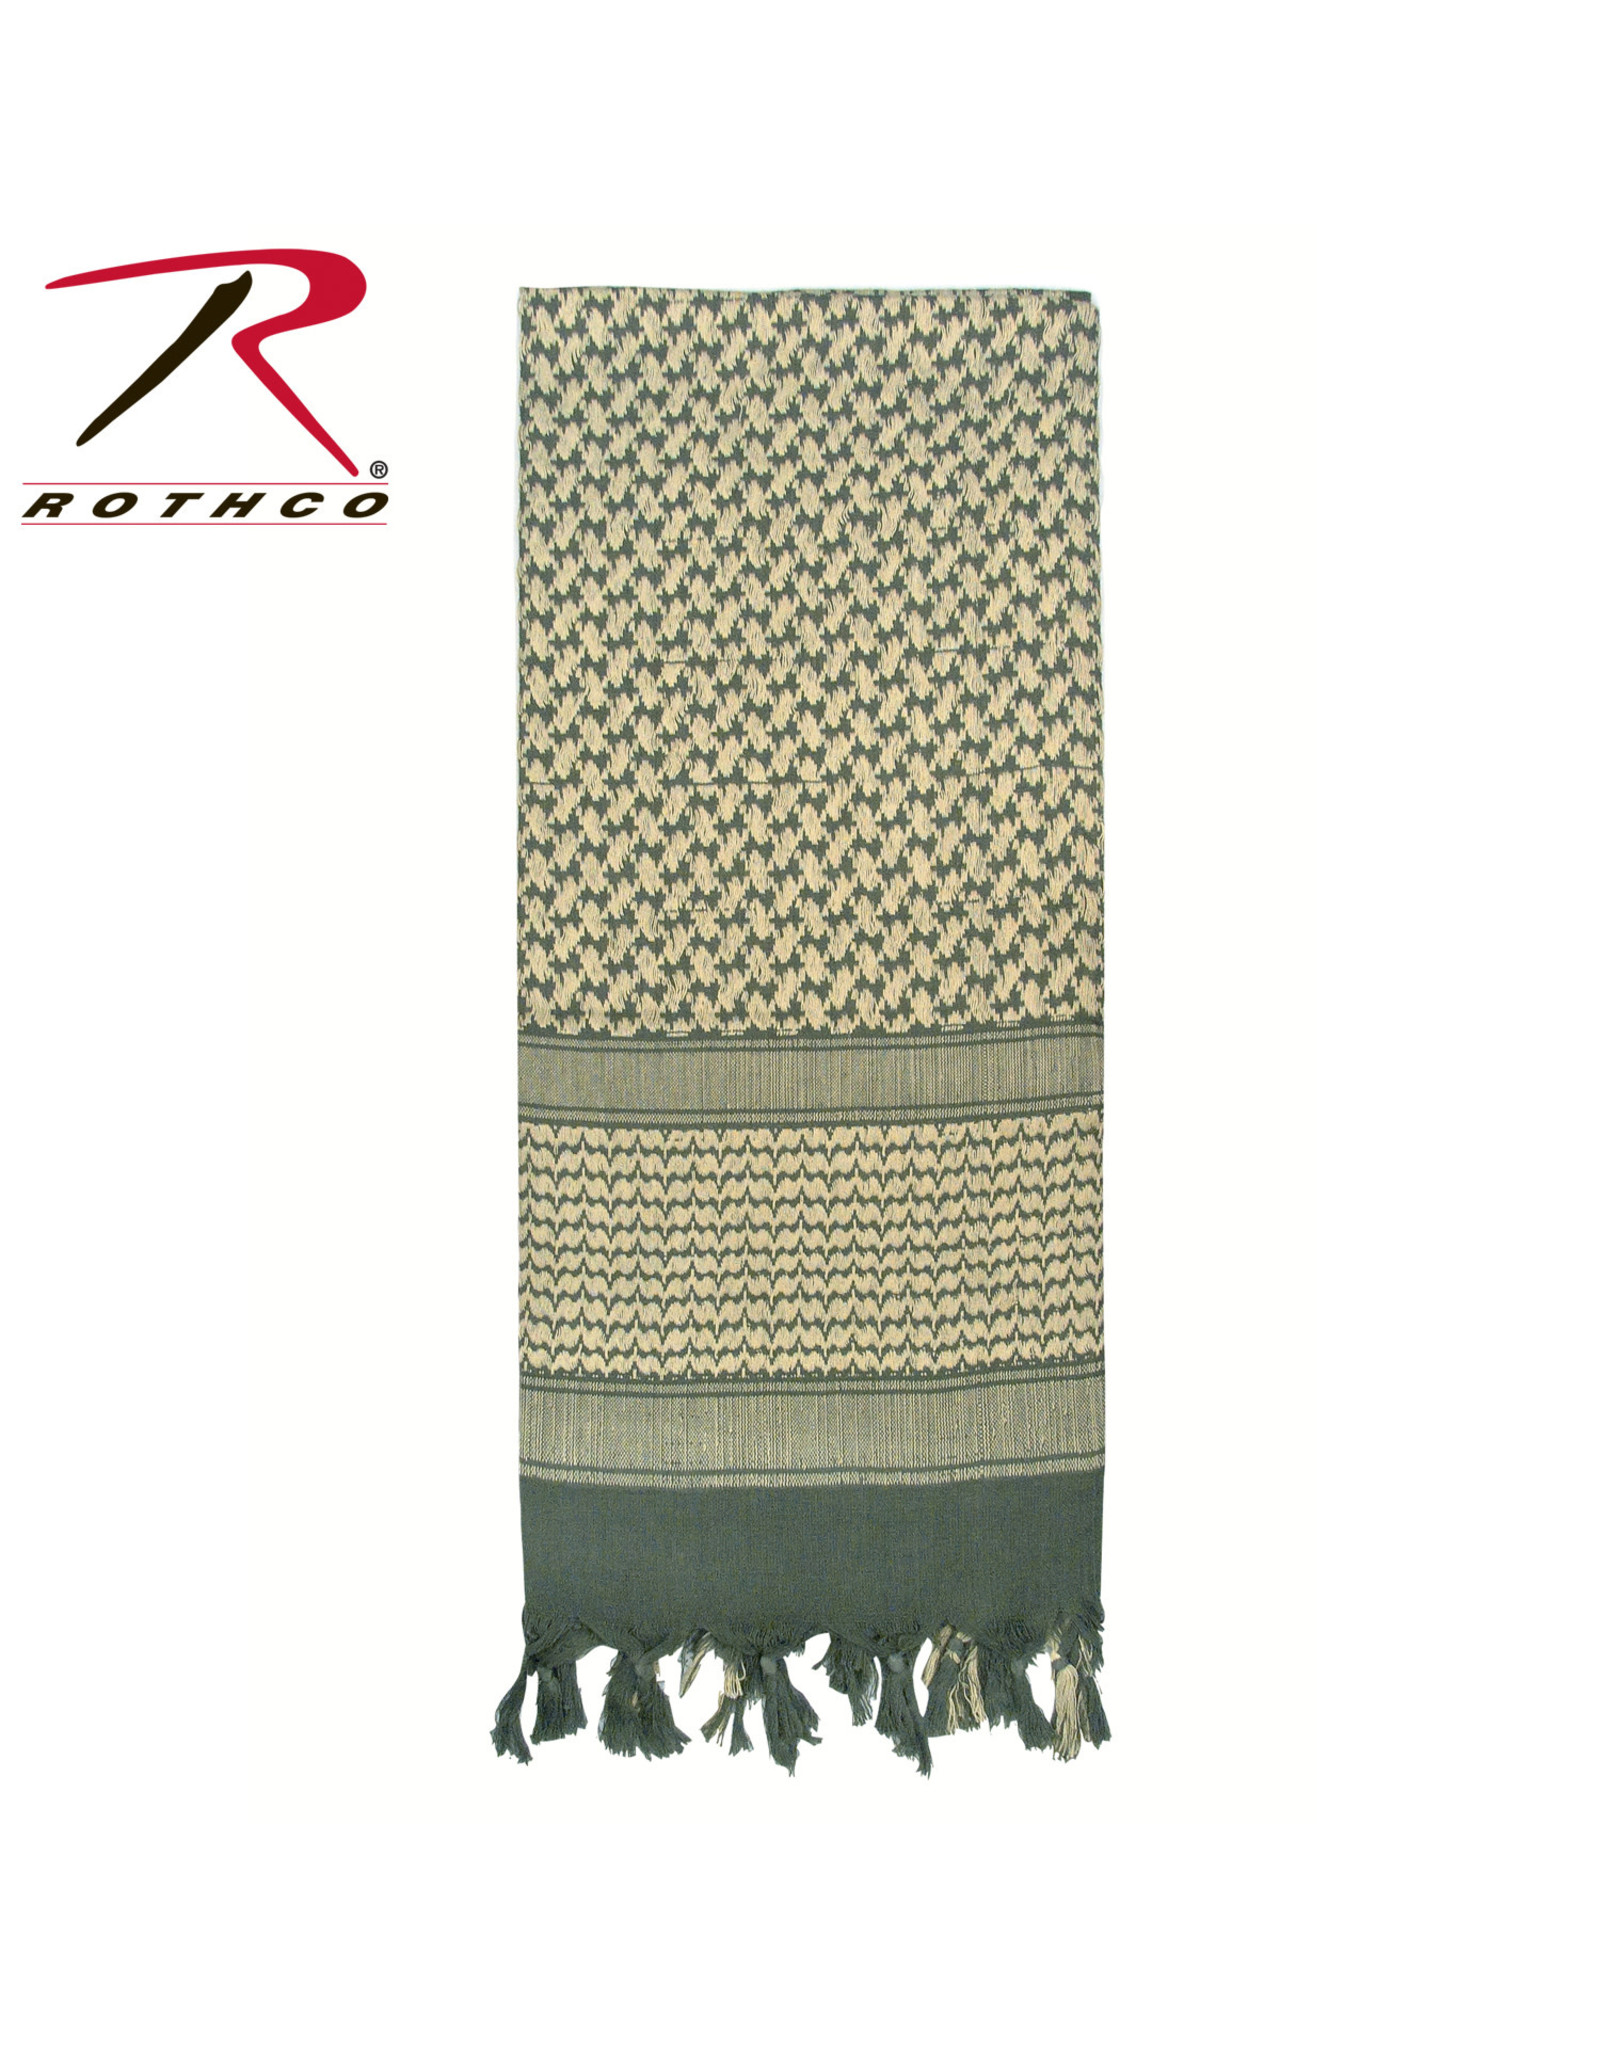 Rothco Shemagh Tactical Scarf